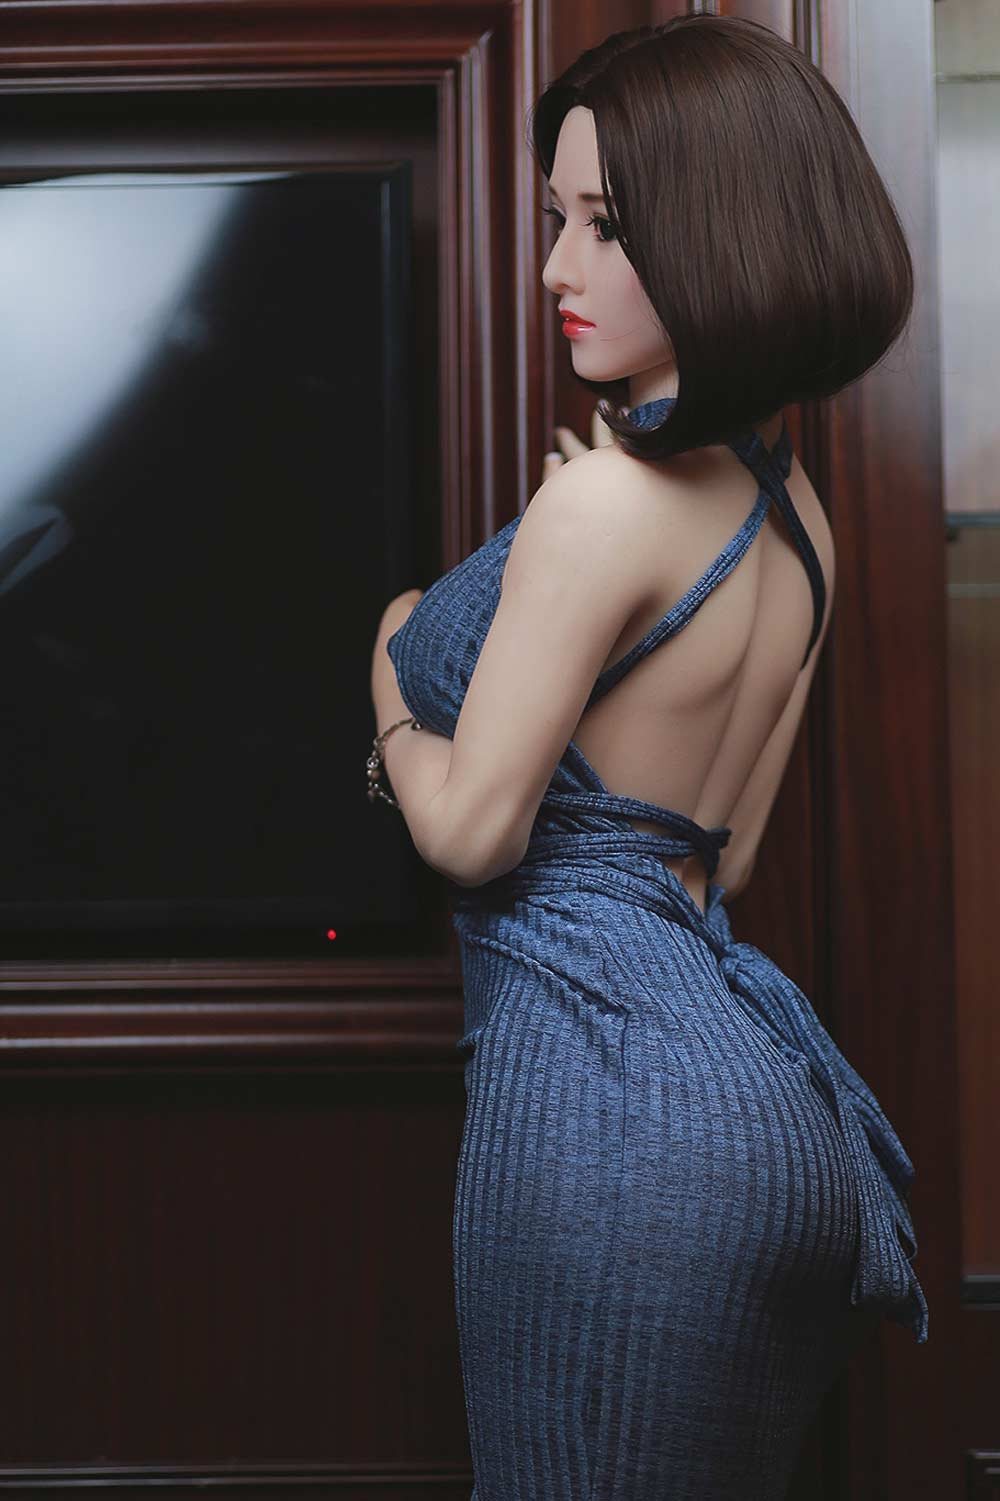 Sex doll with black short hair